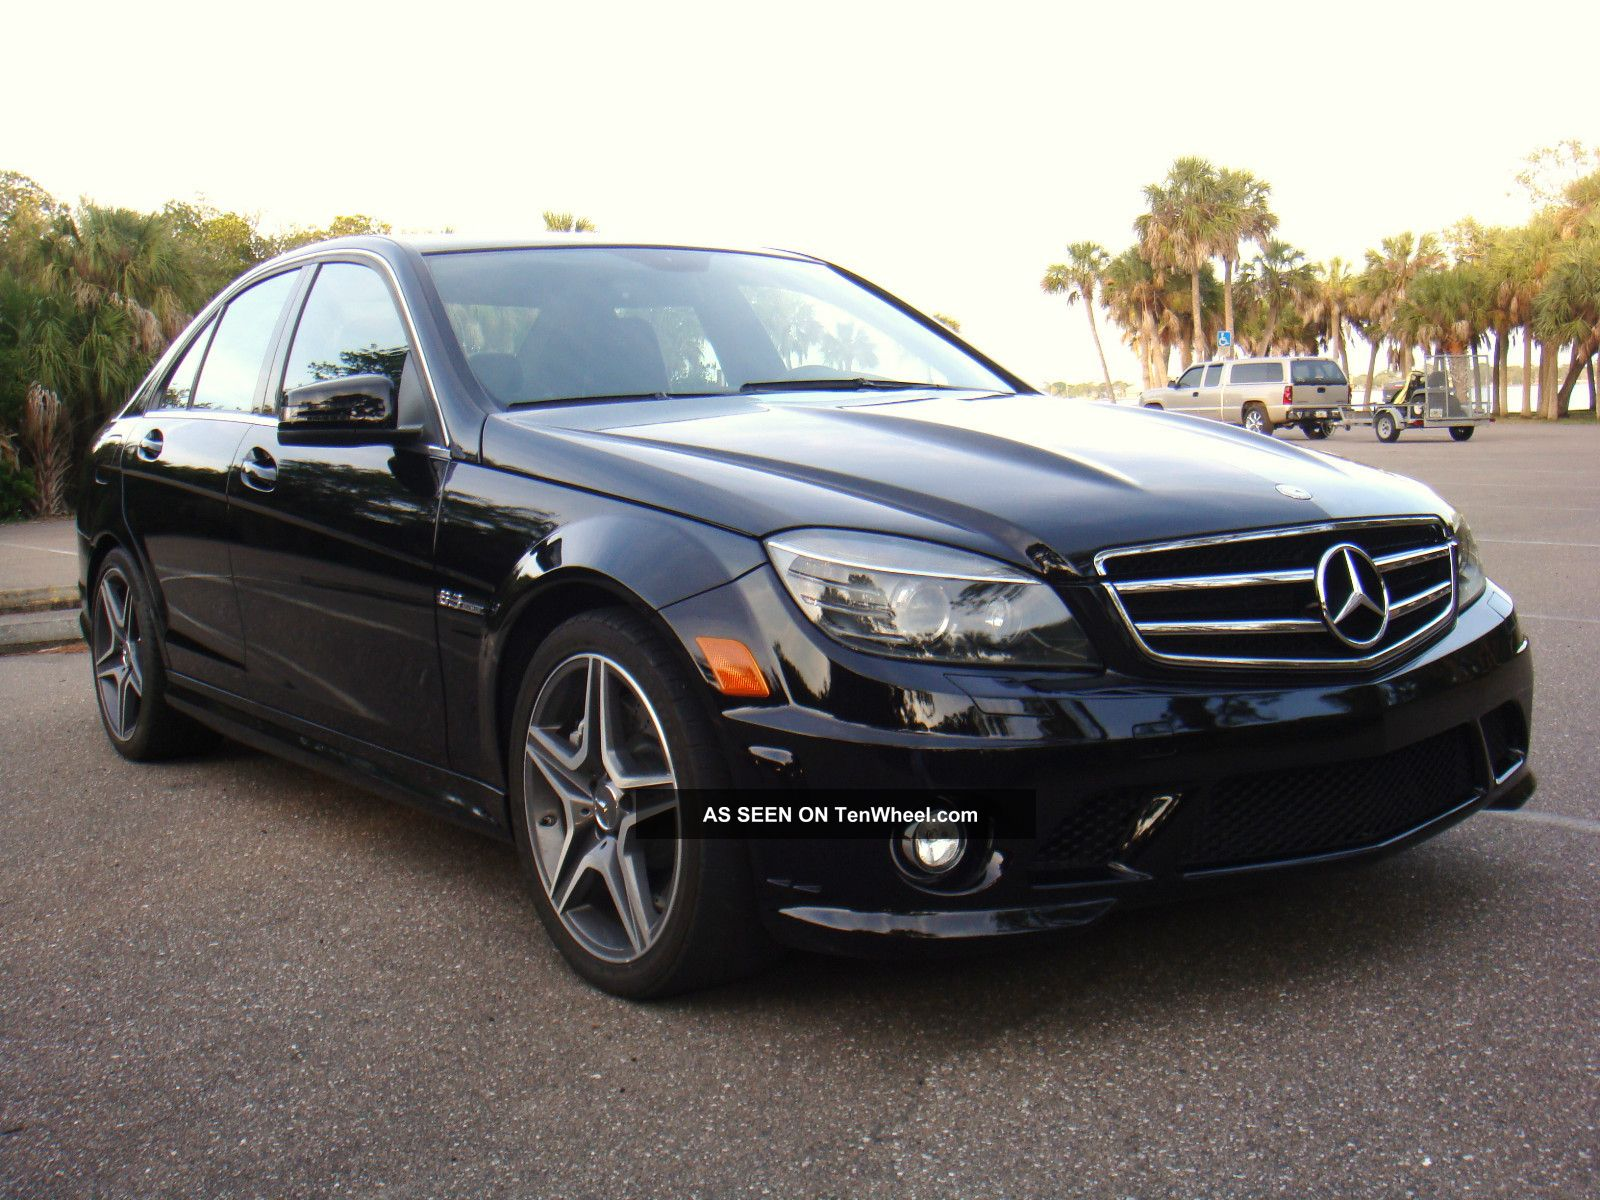 2010 mercedes c63 amg review 2010 mercedes c63 amg the about cars 2010 mercedes c63 amg. Black Bedroom Furniture Sets. Home Design Ideas